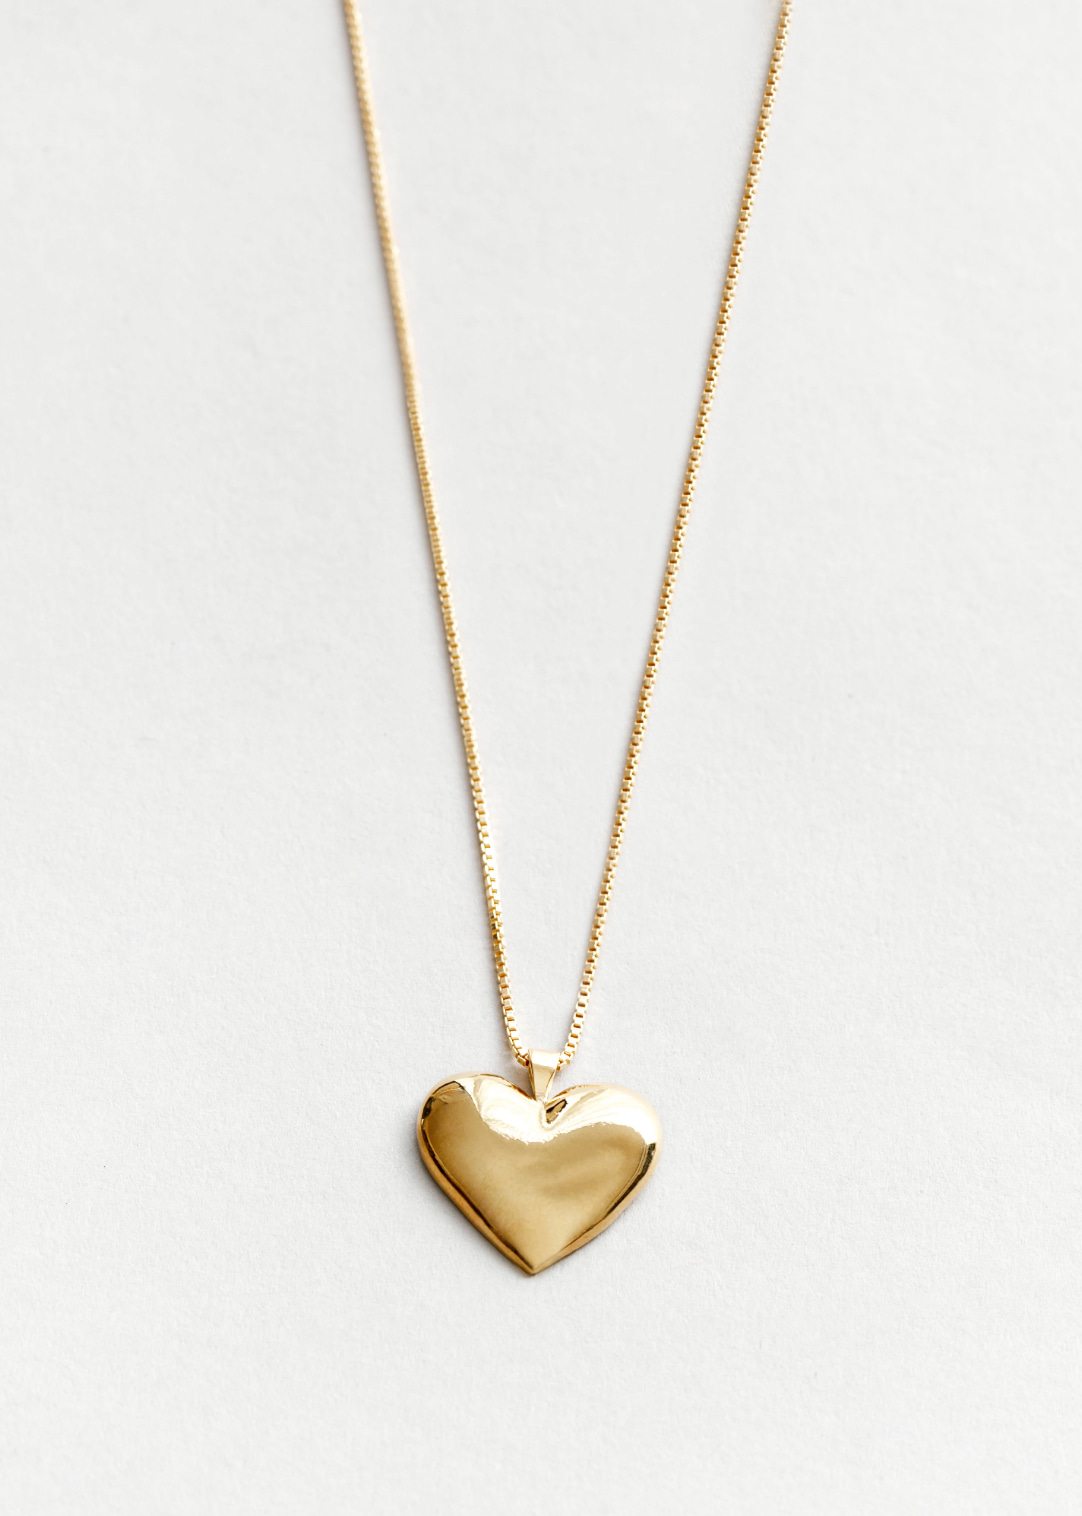 AMOURETTE NECKLACE IN GOLD